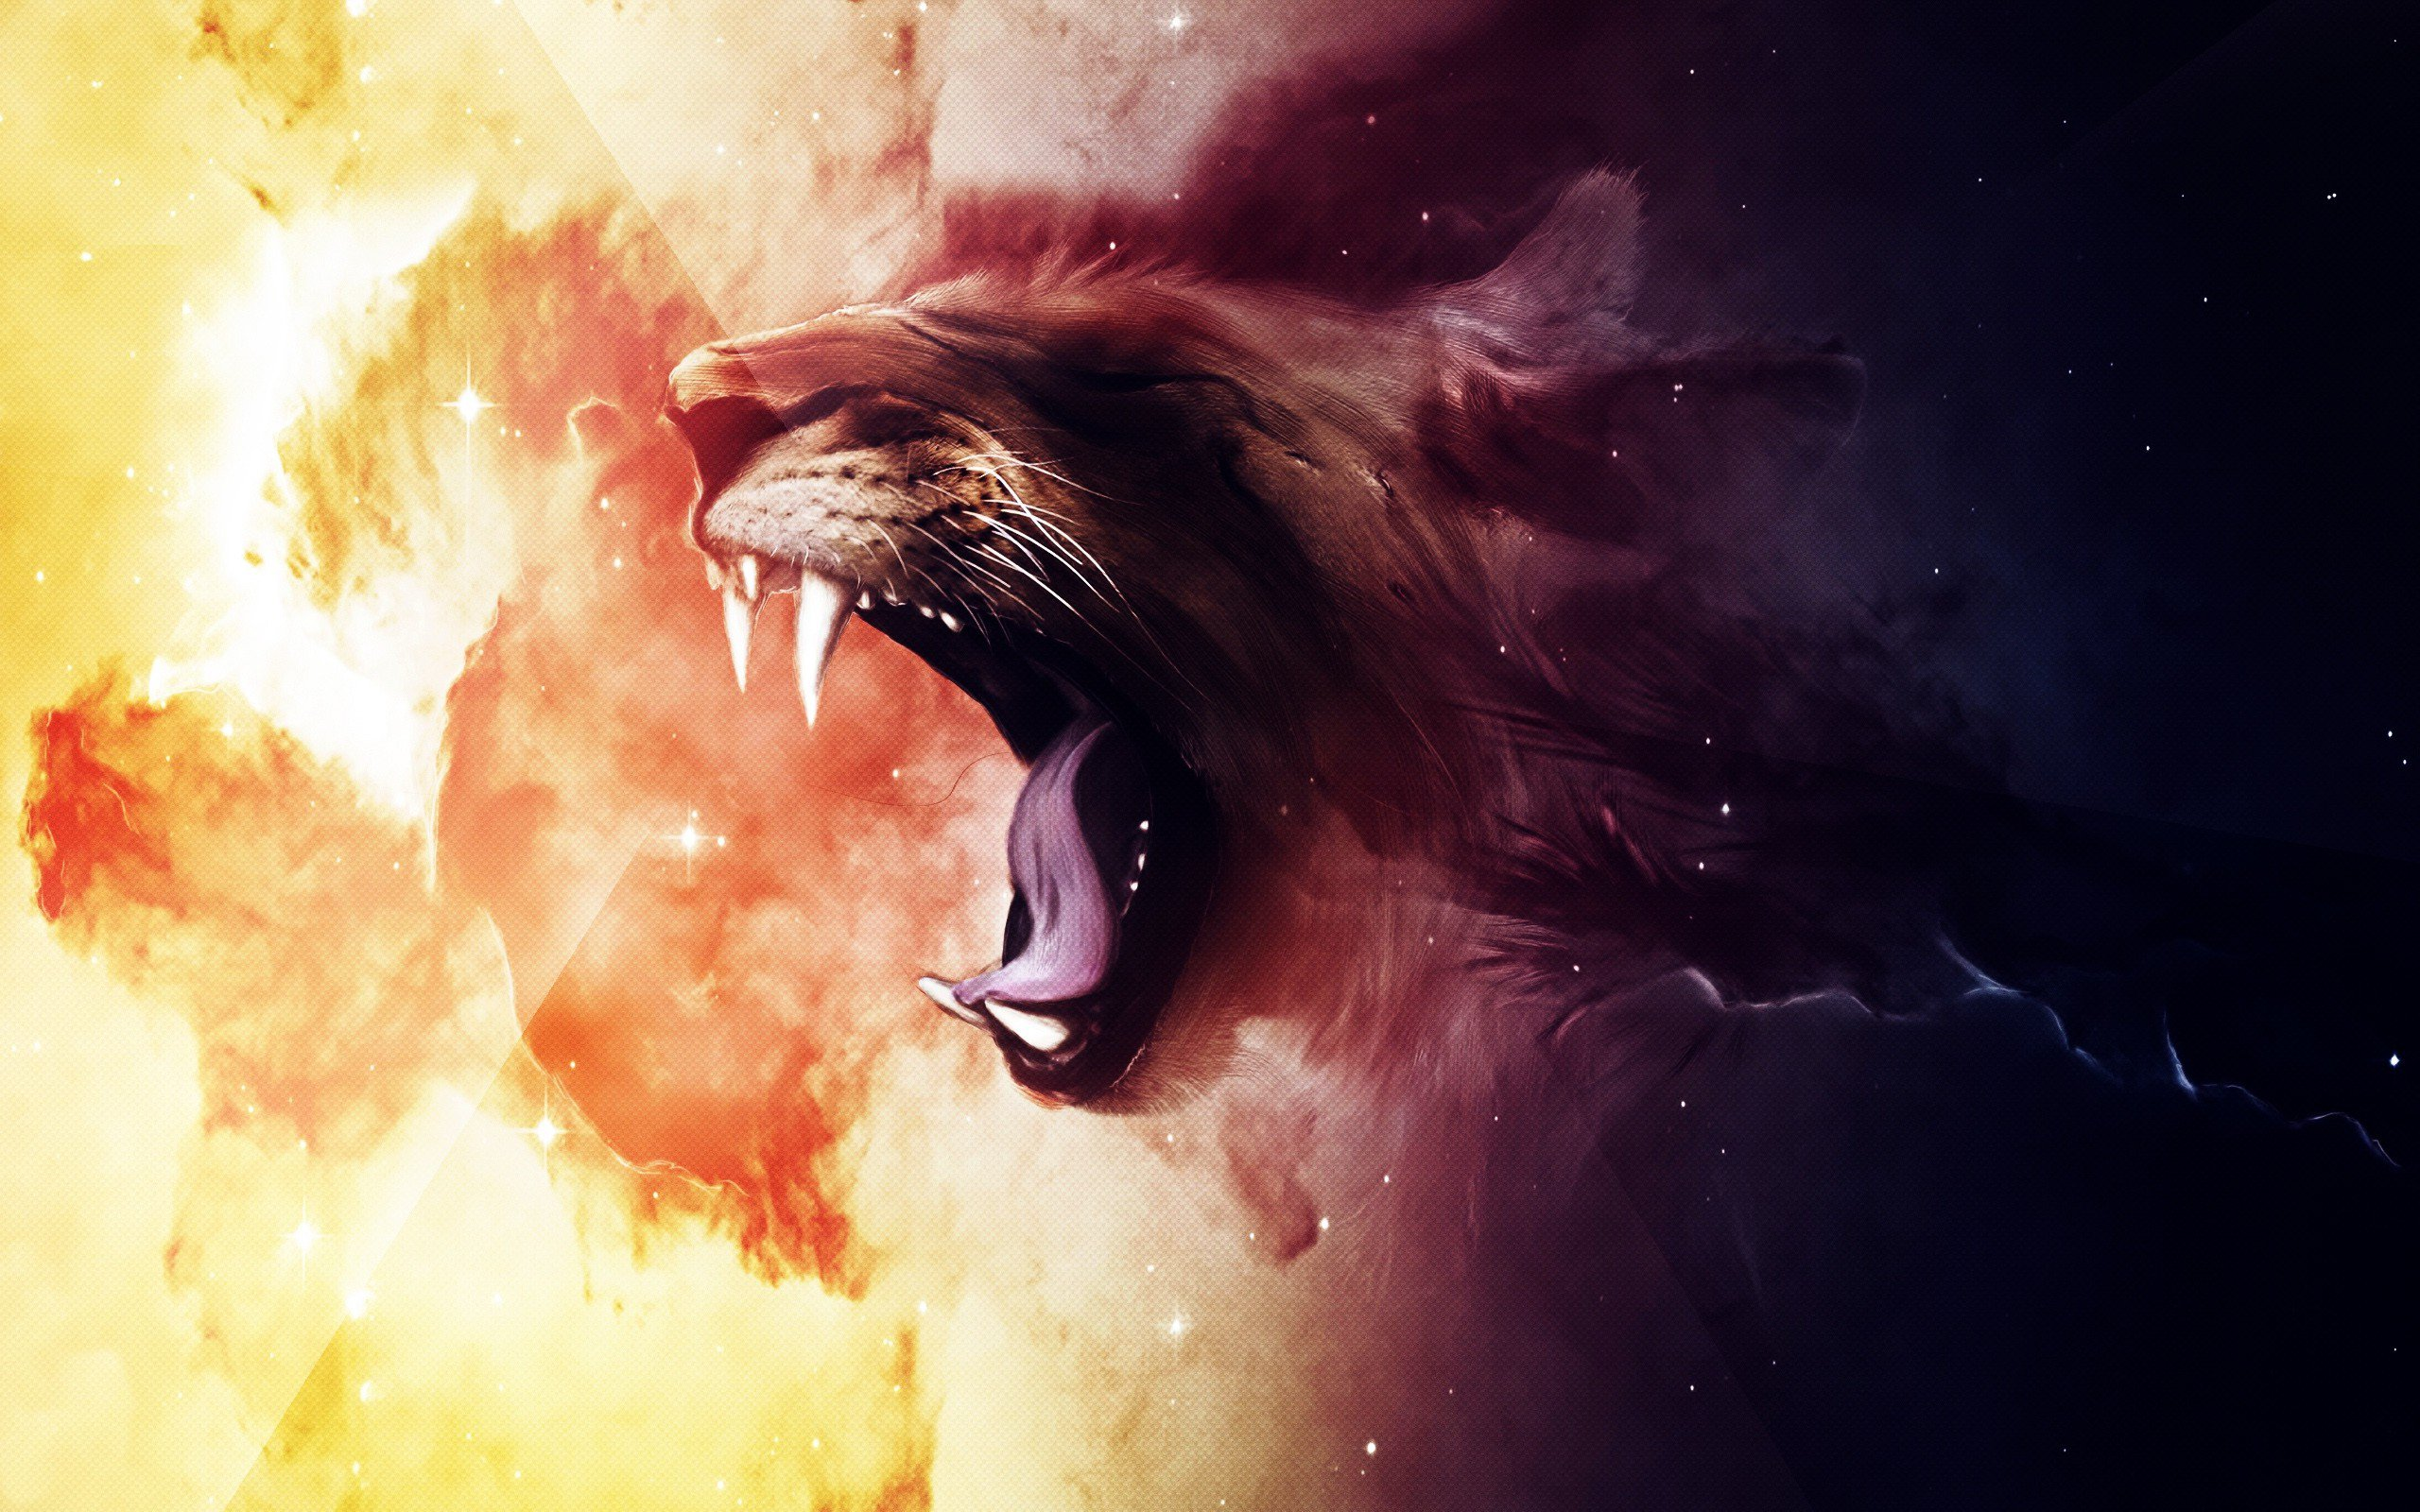 Roaring Lion Hd Creative 4k Wallpapers Images Backgrounds Photos And Pictures